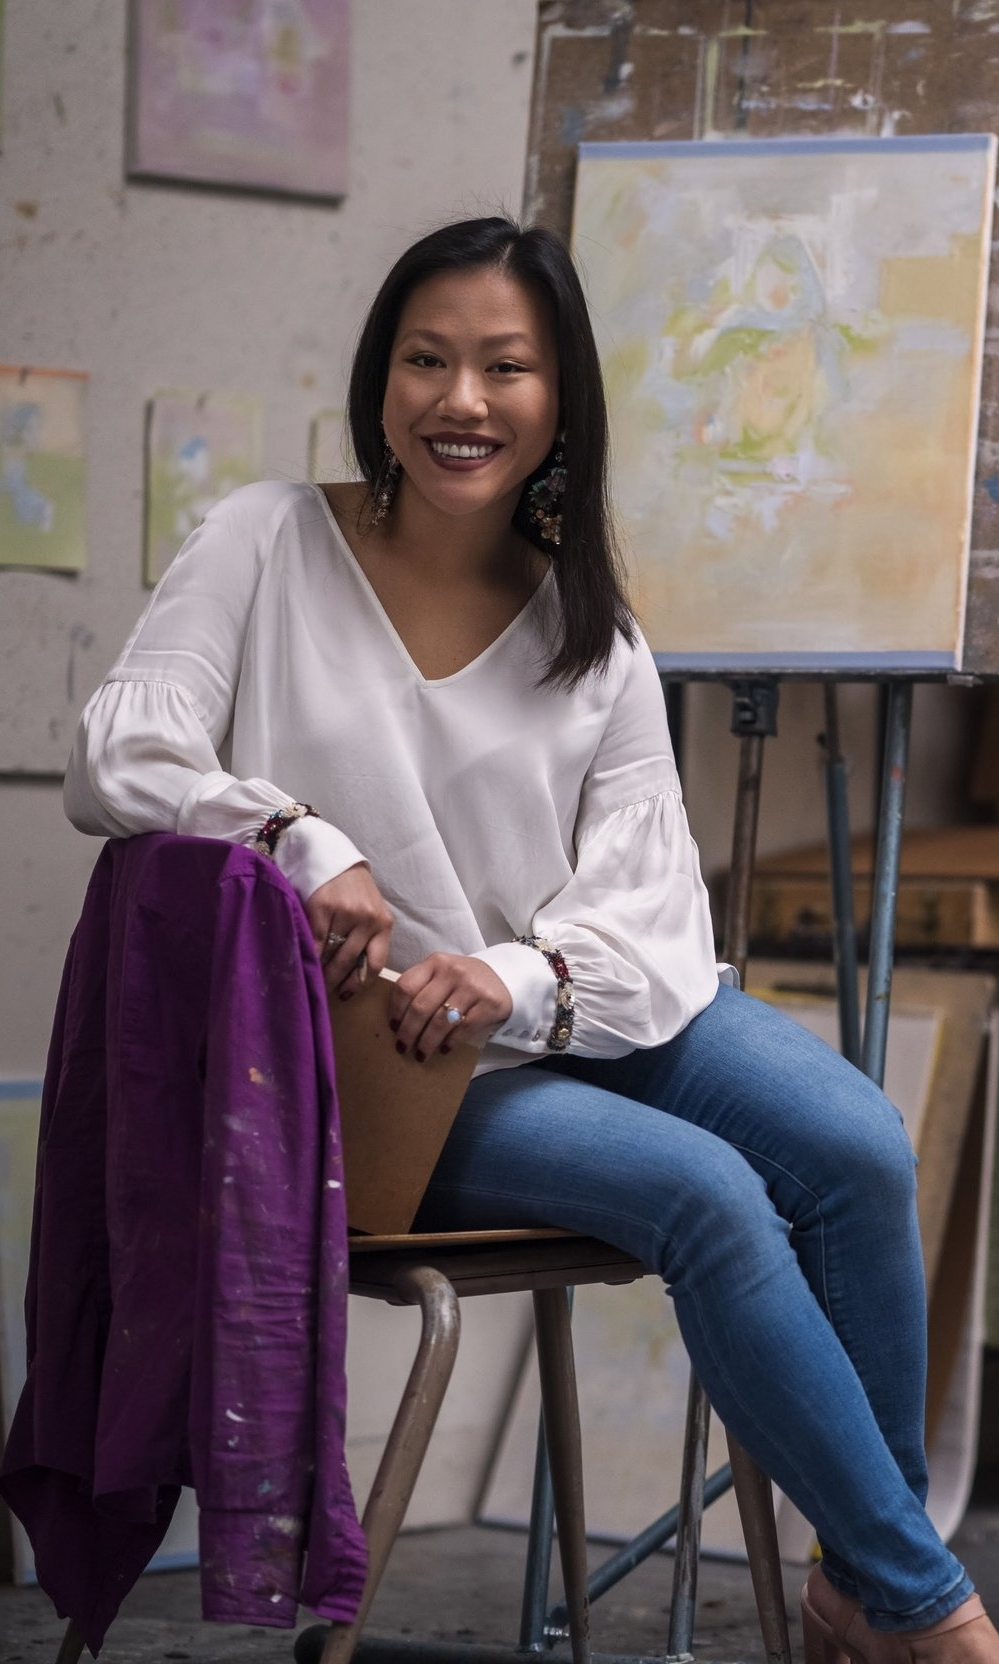 ROSE MARIE LAU - Rose Marie Lau is from Meridian, Mississippi.She is currently pursuing her B.F.A.in Drawing and Painting with a minor in Art History at the University of Southern.She has been an intern for The Meridian Museum of Art and The Lauren Rogers Museum of Art. She has also worked for the university's Art and Design Gallery and the Office of Art and Design. Her focus is to spread, educate, and preserve the importance of art and the joys it can bring. She will continue her studies in Rome, Italy at The Rome Art Program over the summer.